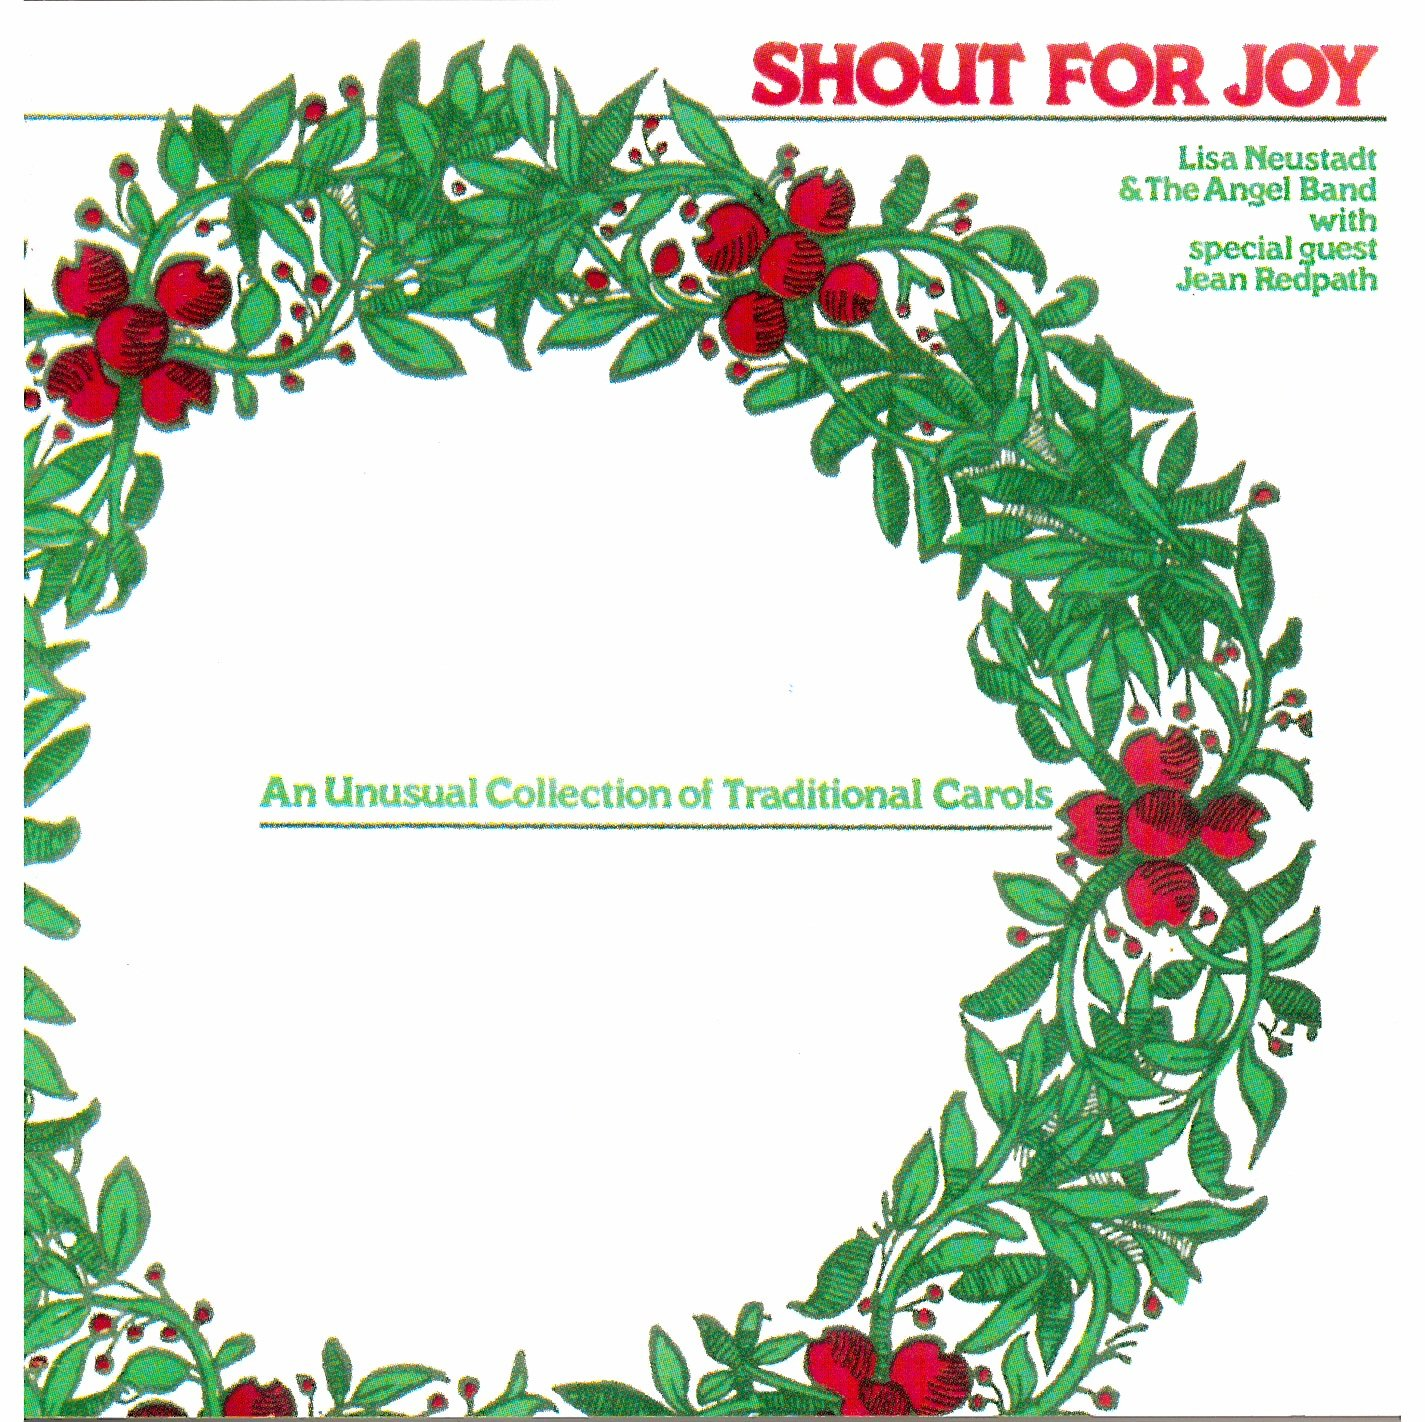 Shout for Joy: An Unusual Collection of Traditional Carols